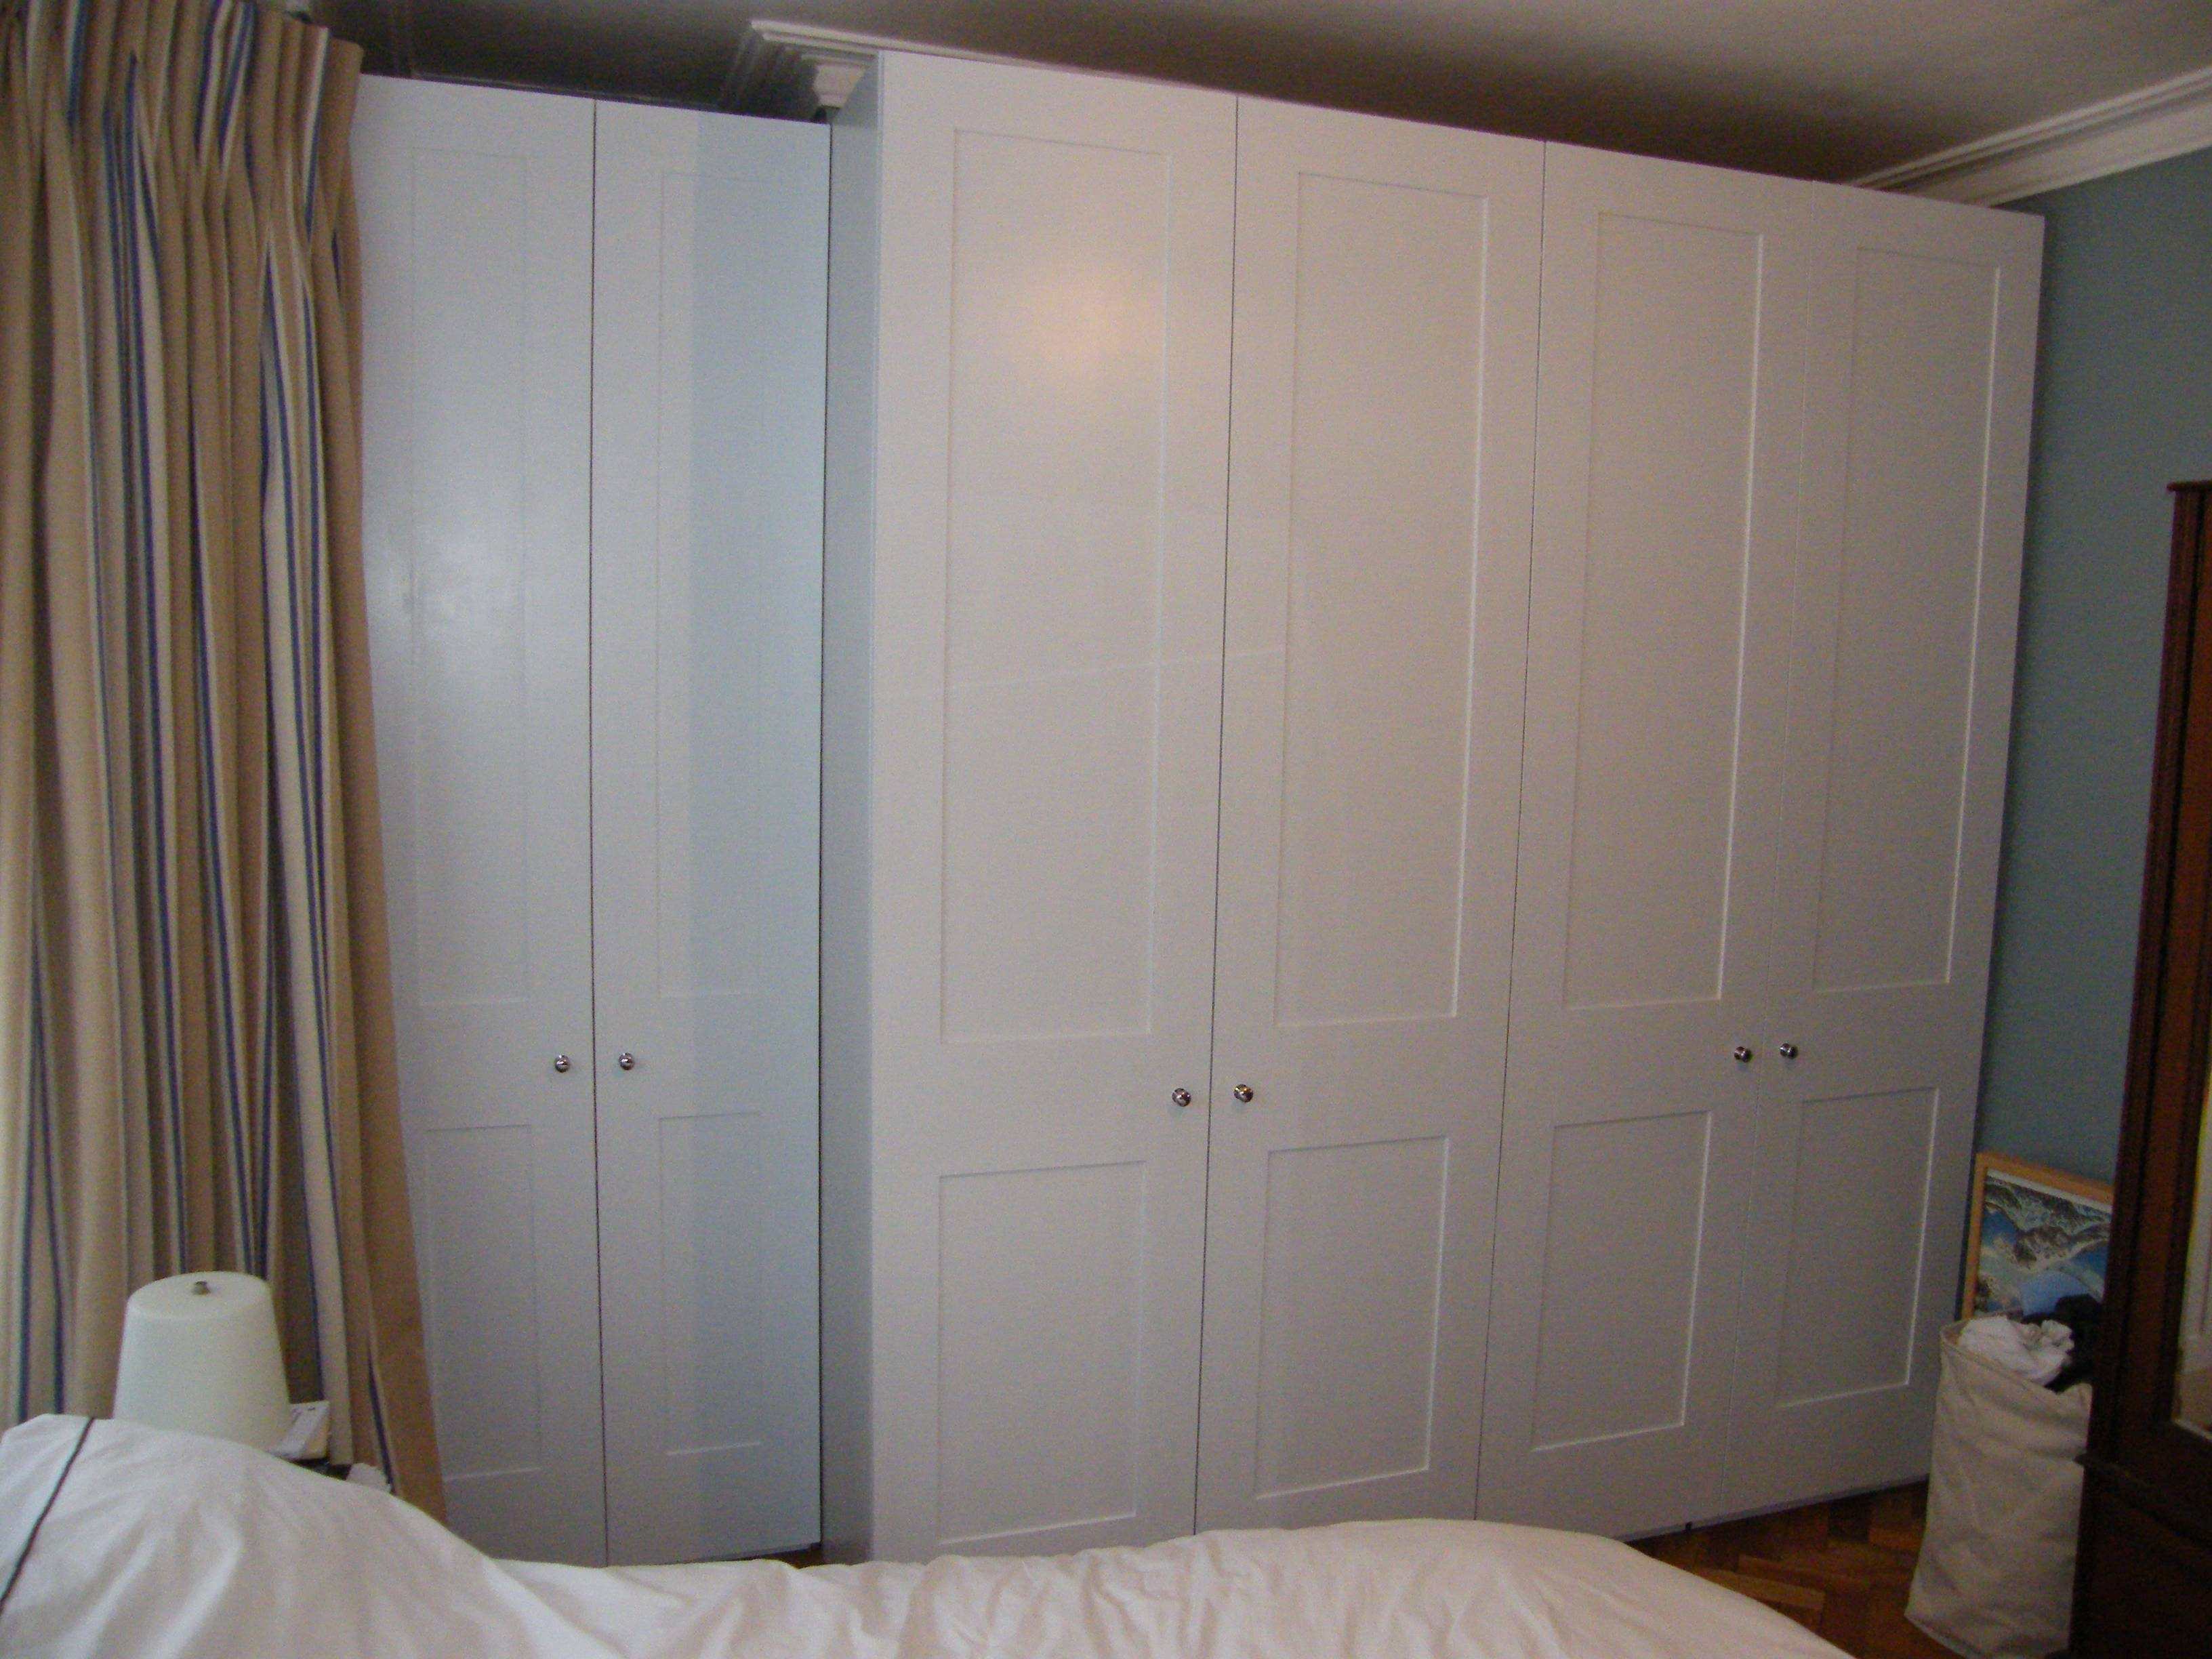 Fitted Wardrobes | Brian White Carpentry inside French Style Fitted Wardrobes (Image 8 of 15)